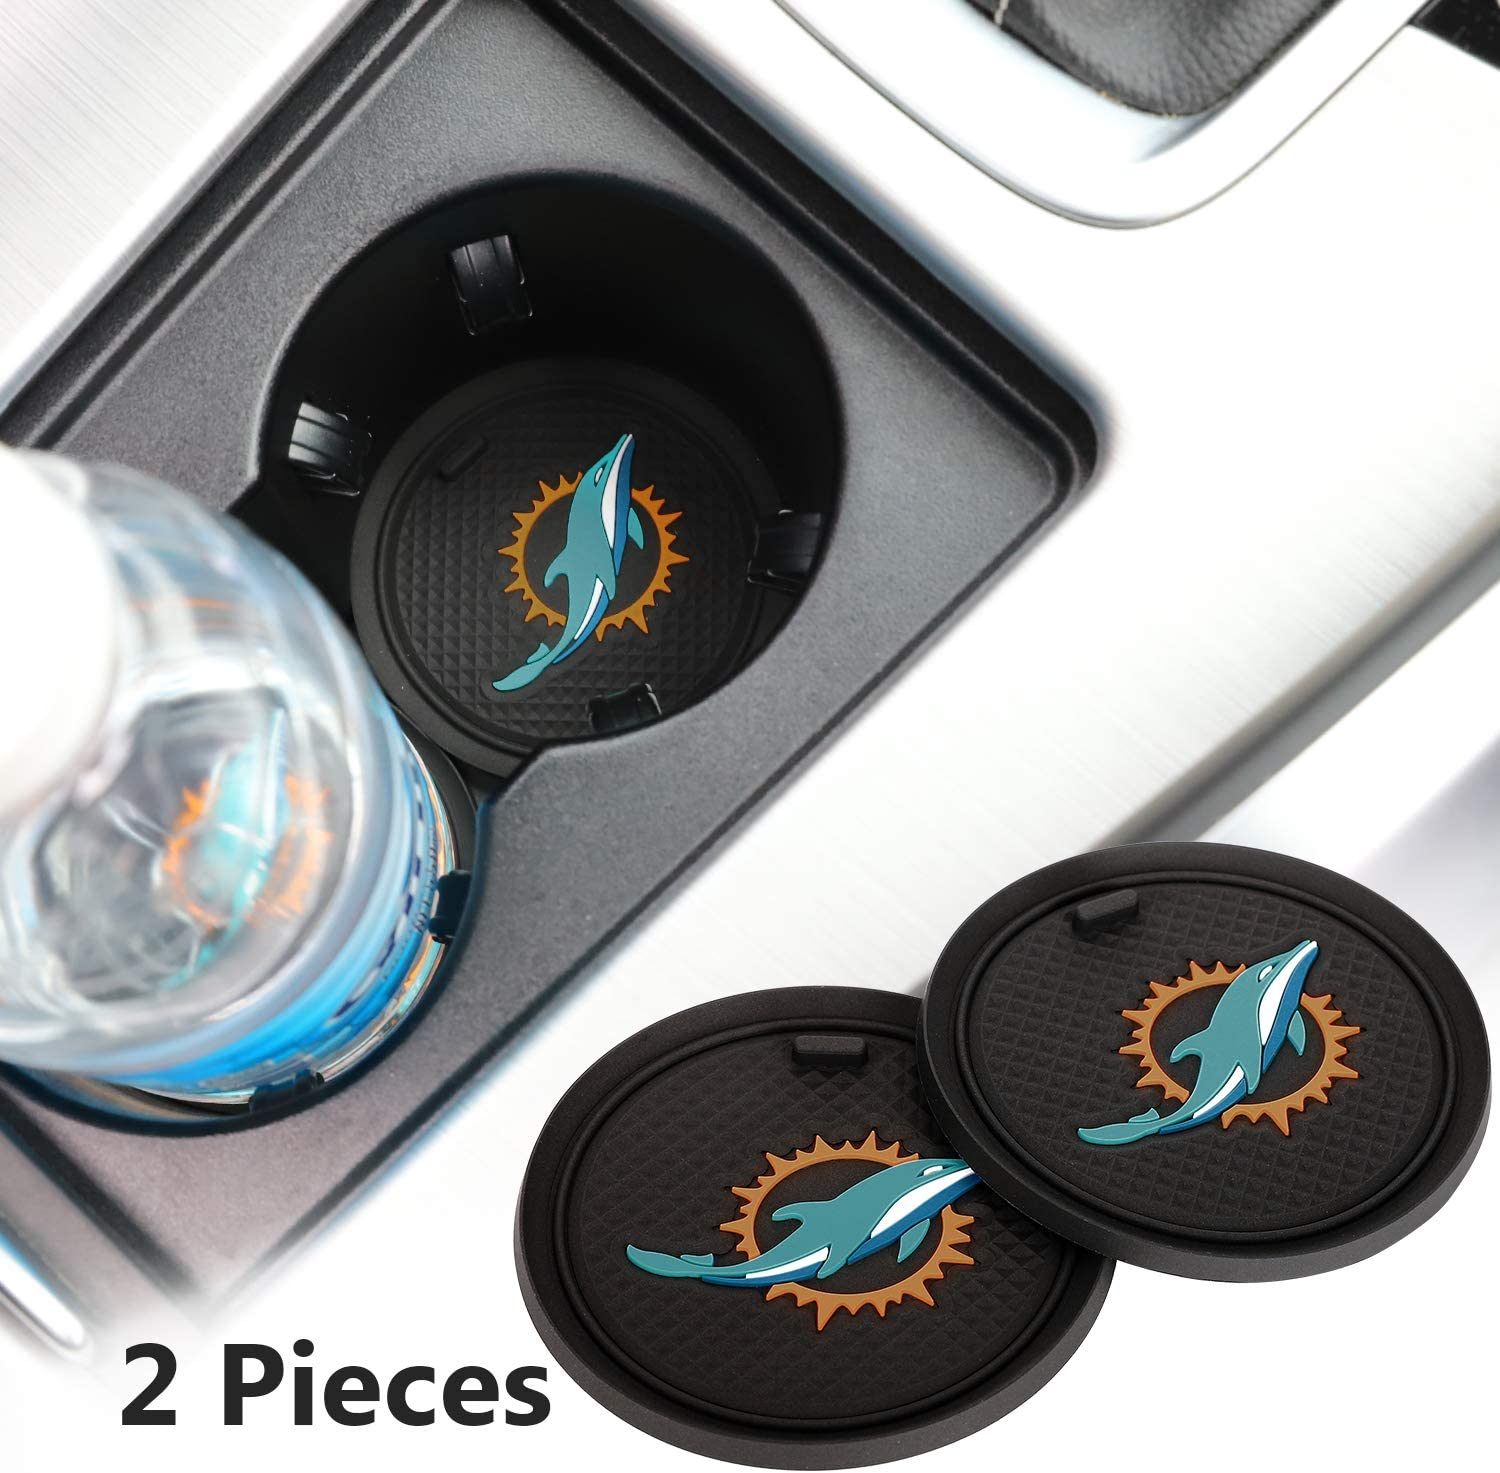 2 Pack 2.75 inch for Miami Dolphins Car Interior Accessories Anti Slip Cup Mat for All Vehicles (Miami Dolphins)